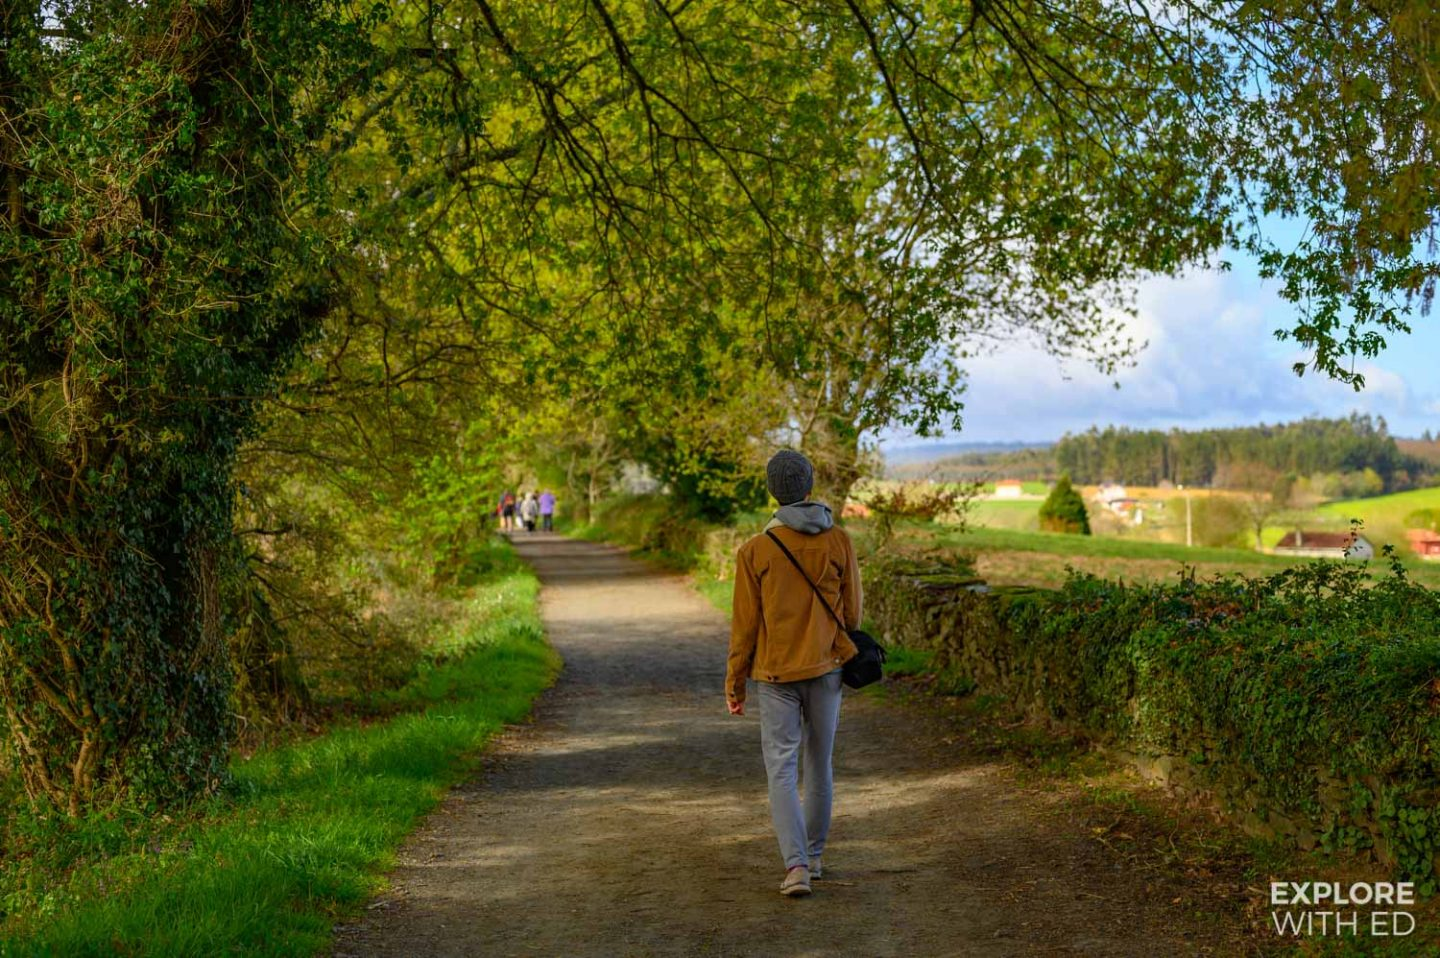 Walking Camino de Santiago